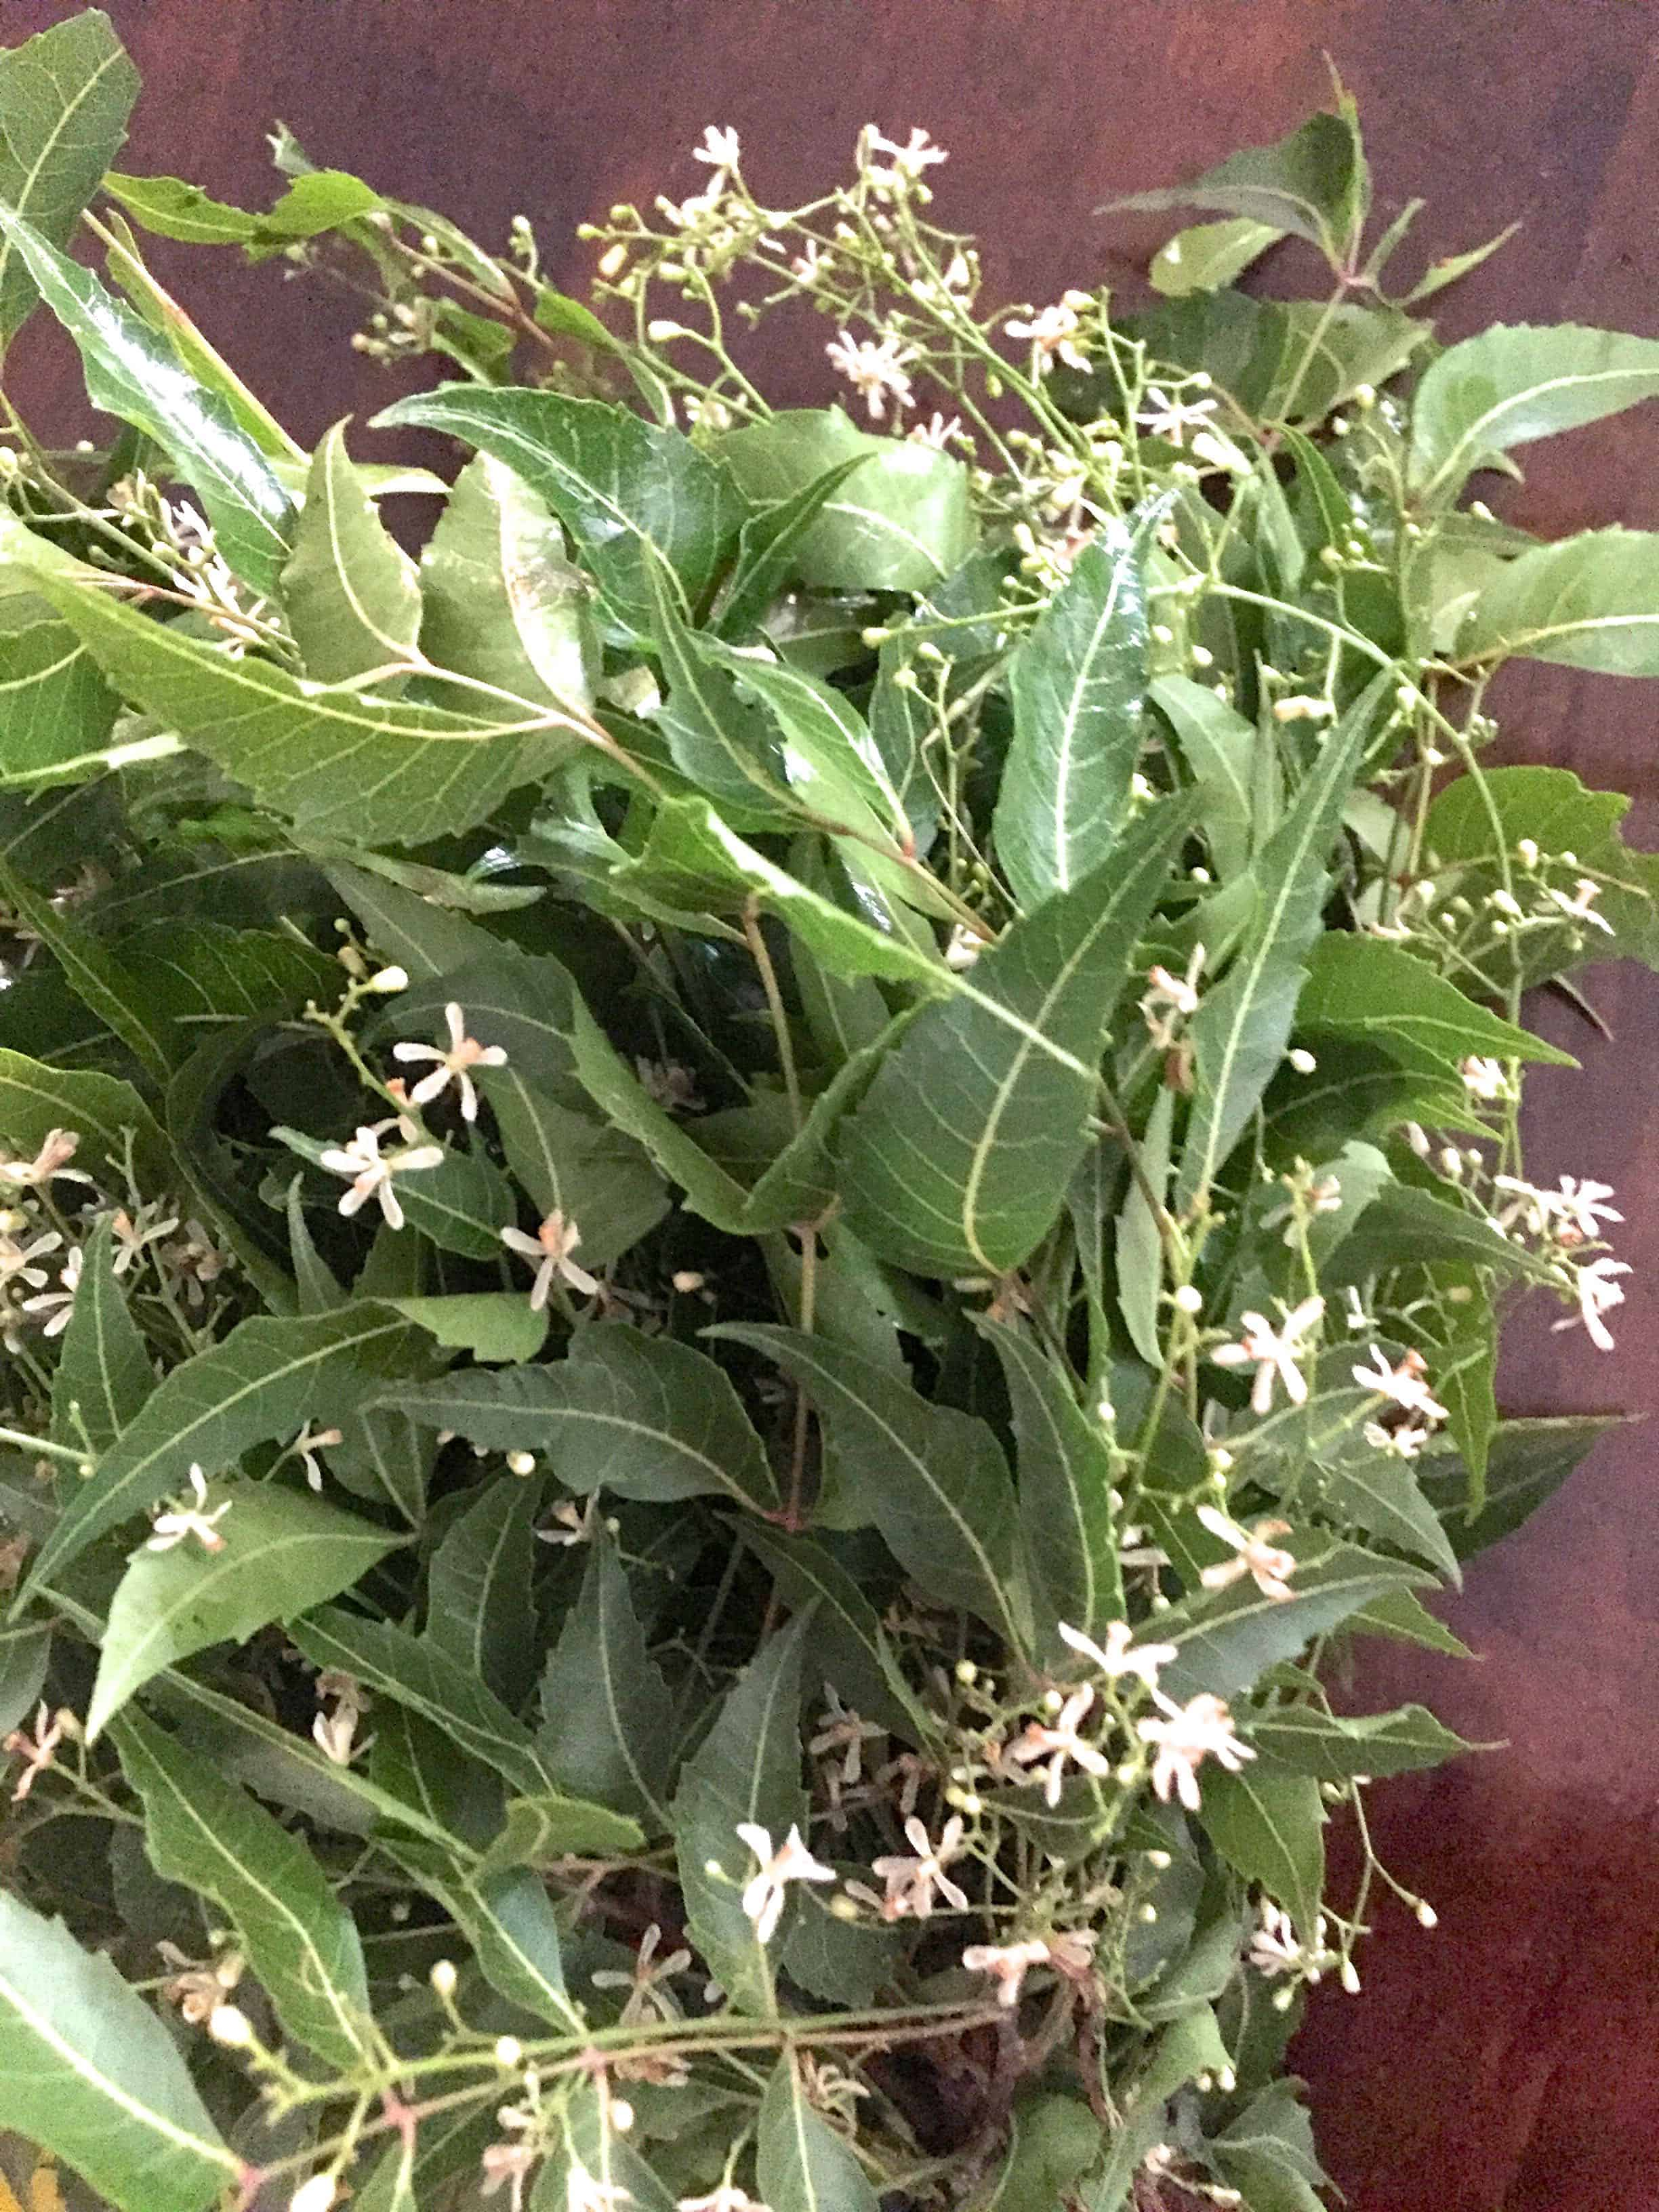 A bunch of neem leaves with star like white fresh neem flowers